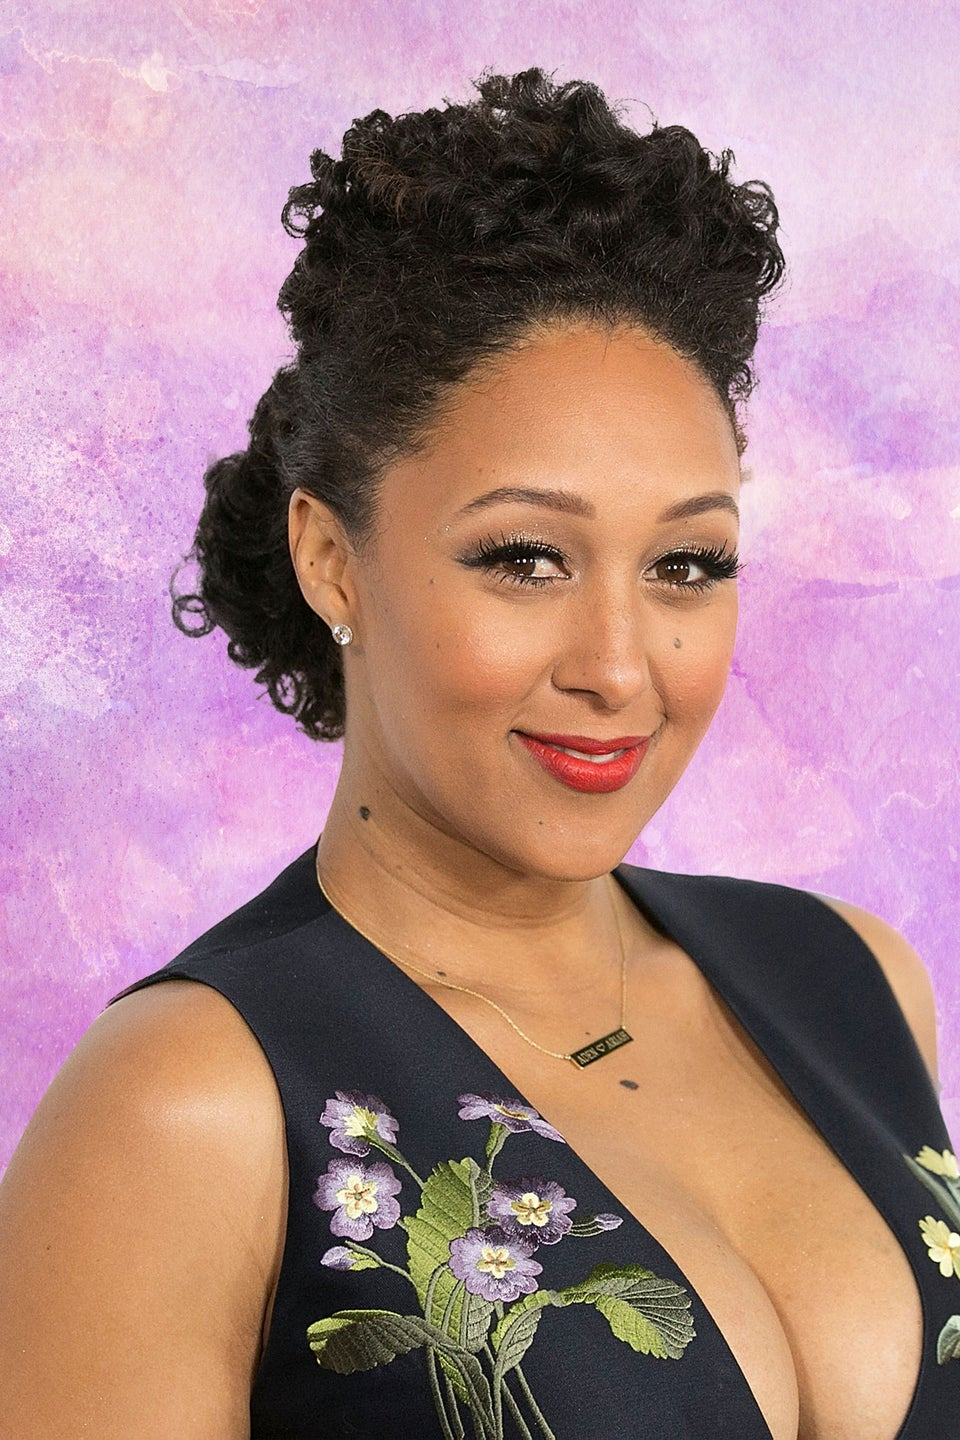 Tamera Mowry-Housley Gets 'Real' About Tamar's Departure, Voting on the Issues and Being a Proud Black Woman